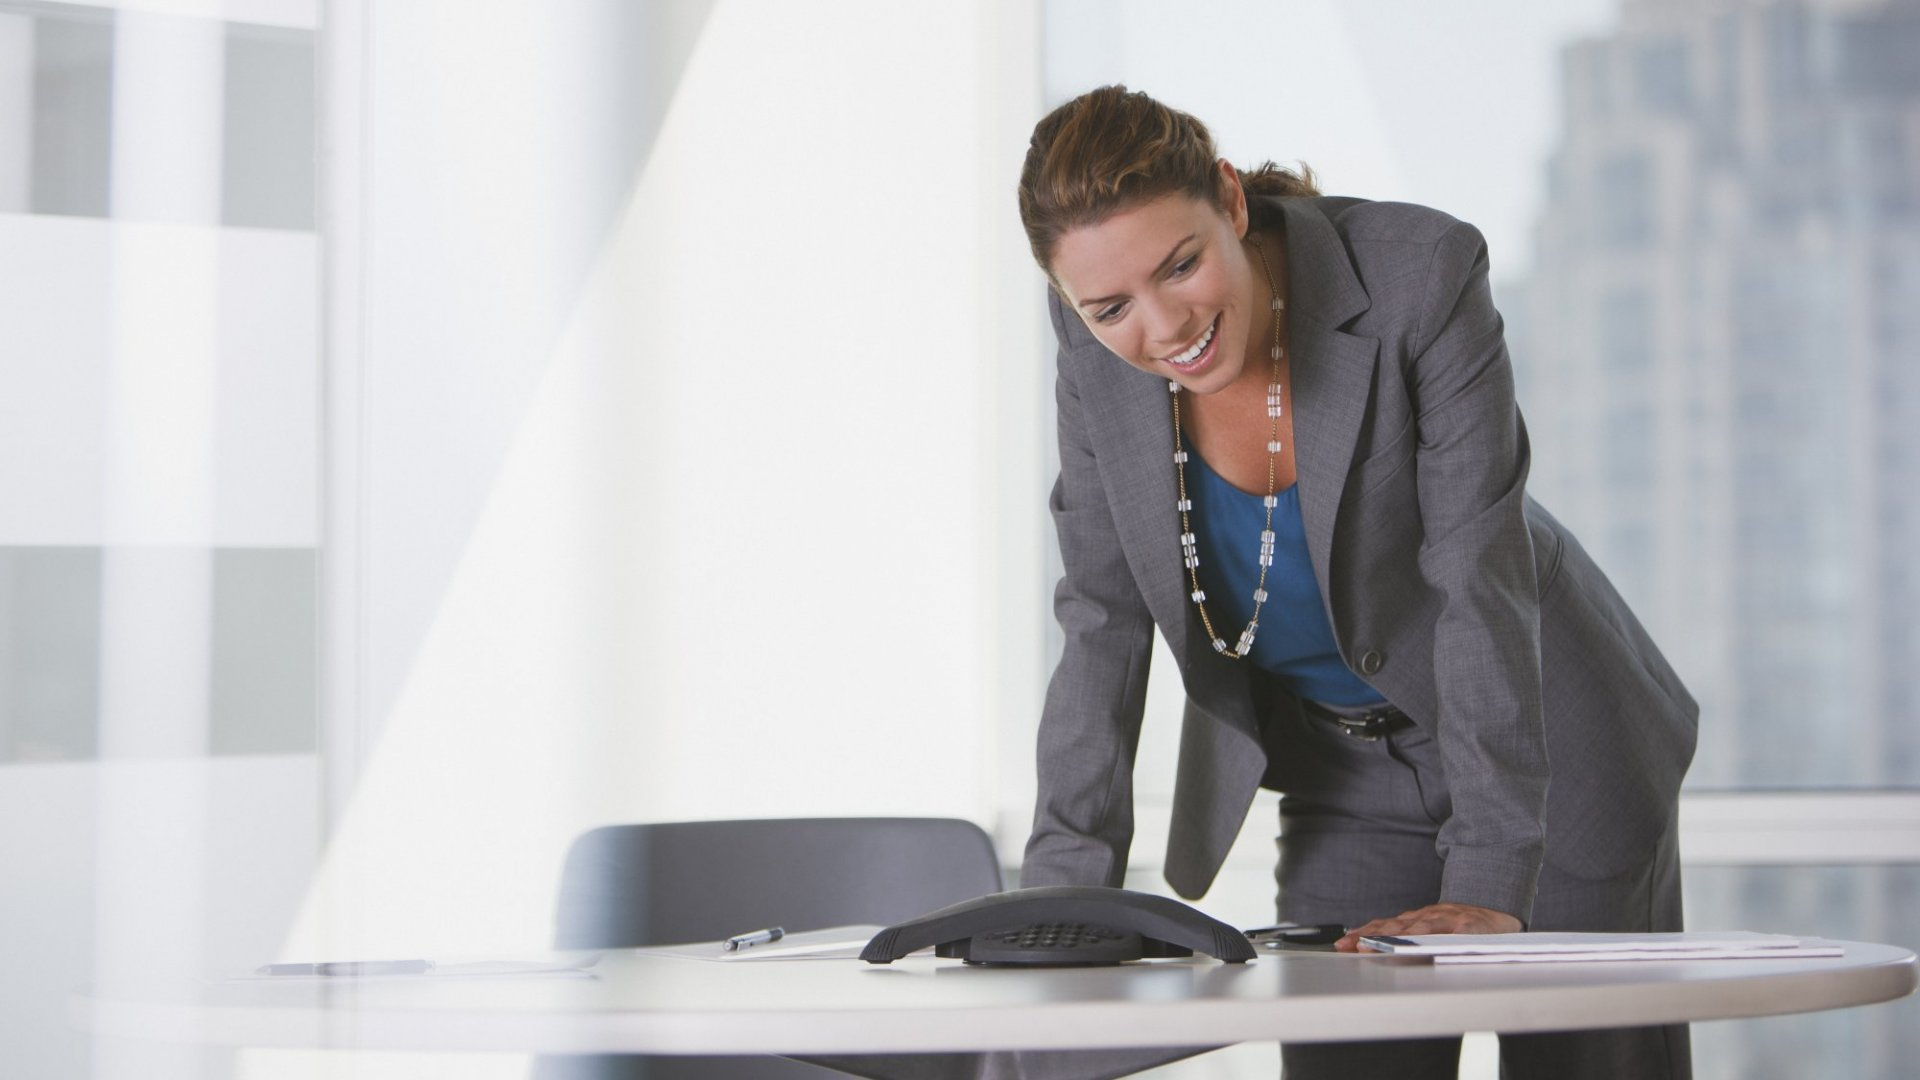 On a Conference Call, You Have to Act Charismatic (Even If You're Not). Here's How